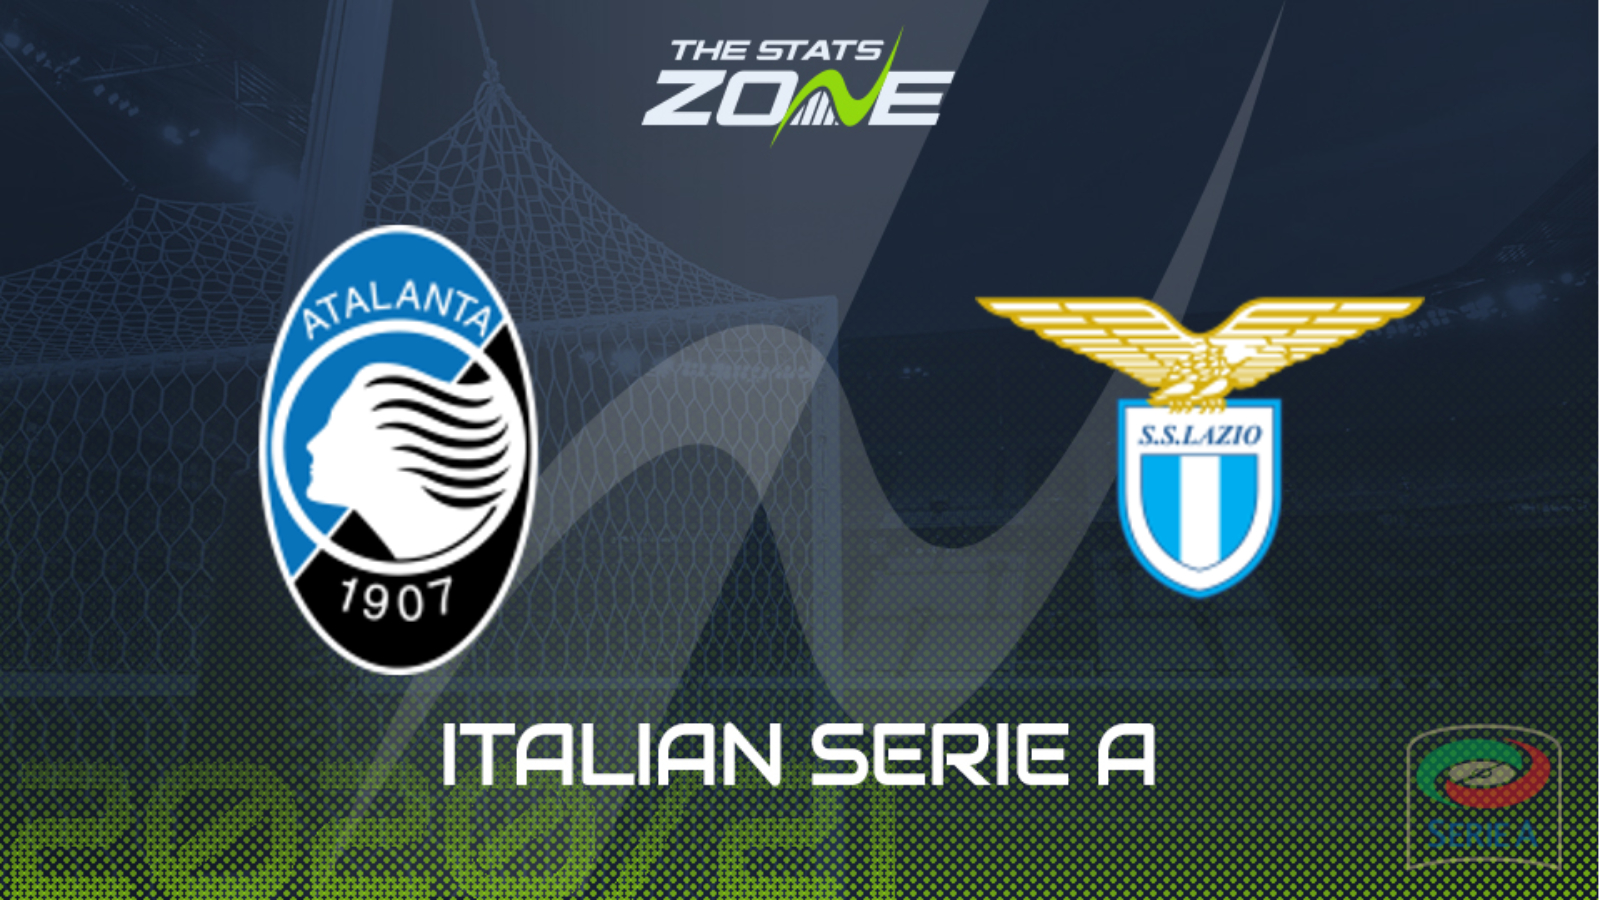 Atalanta vs lazio betting tips sports betting can you win